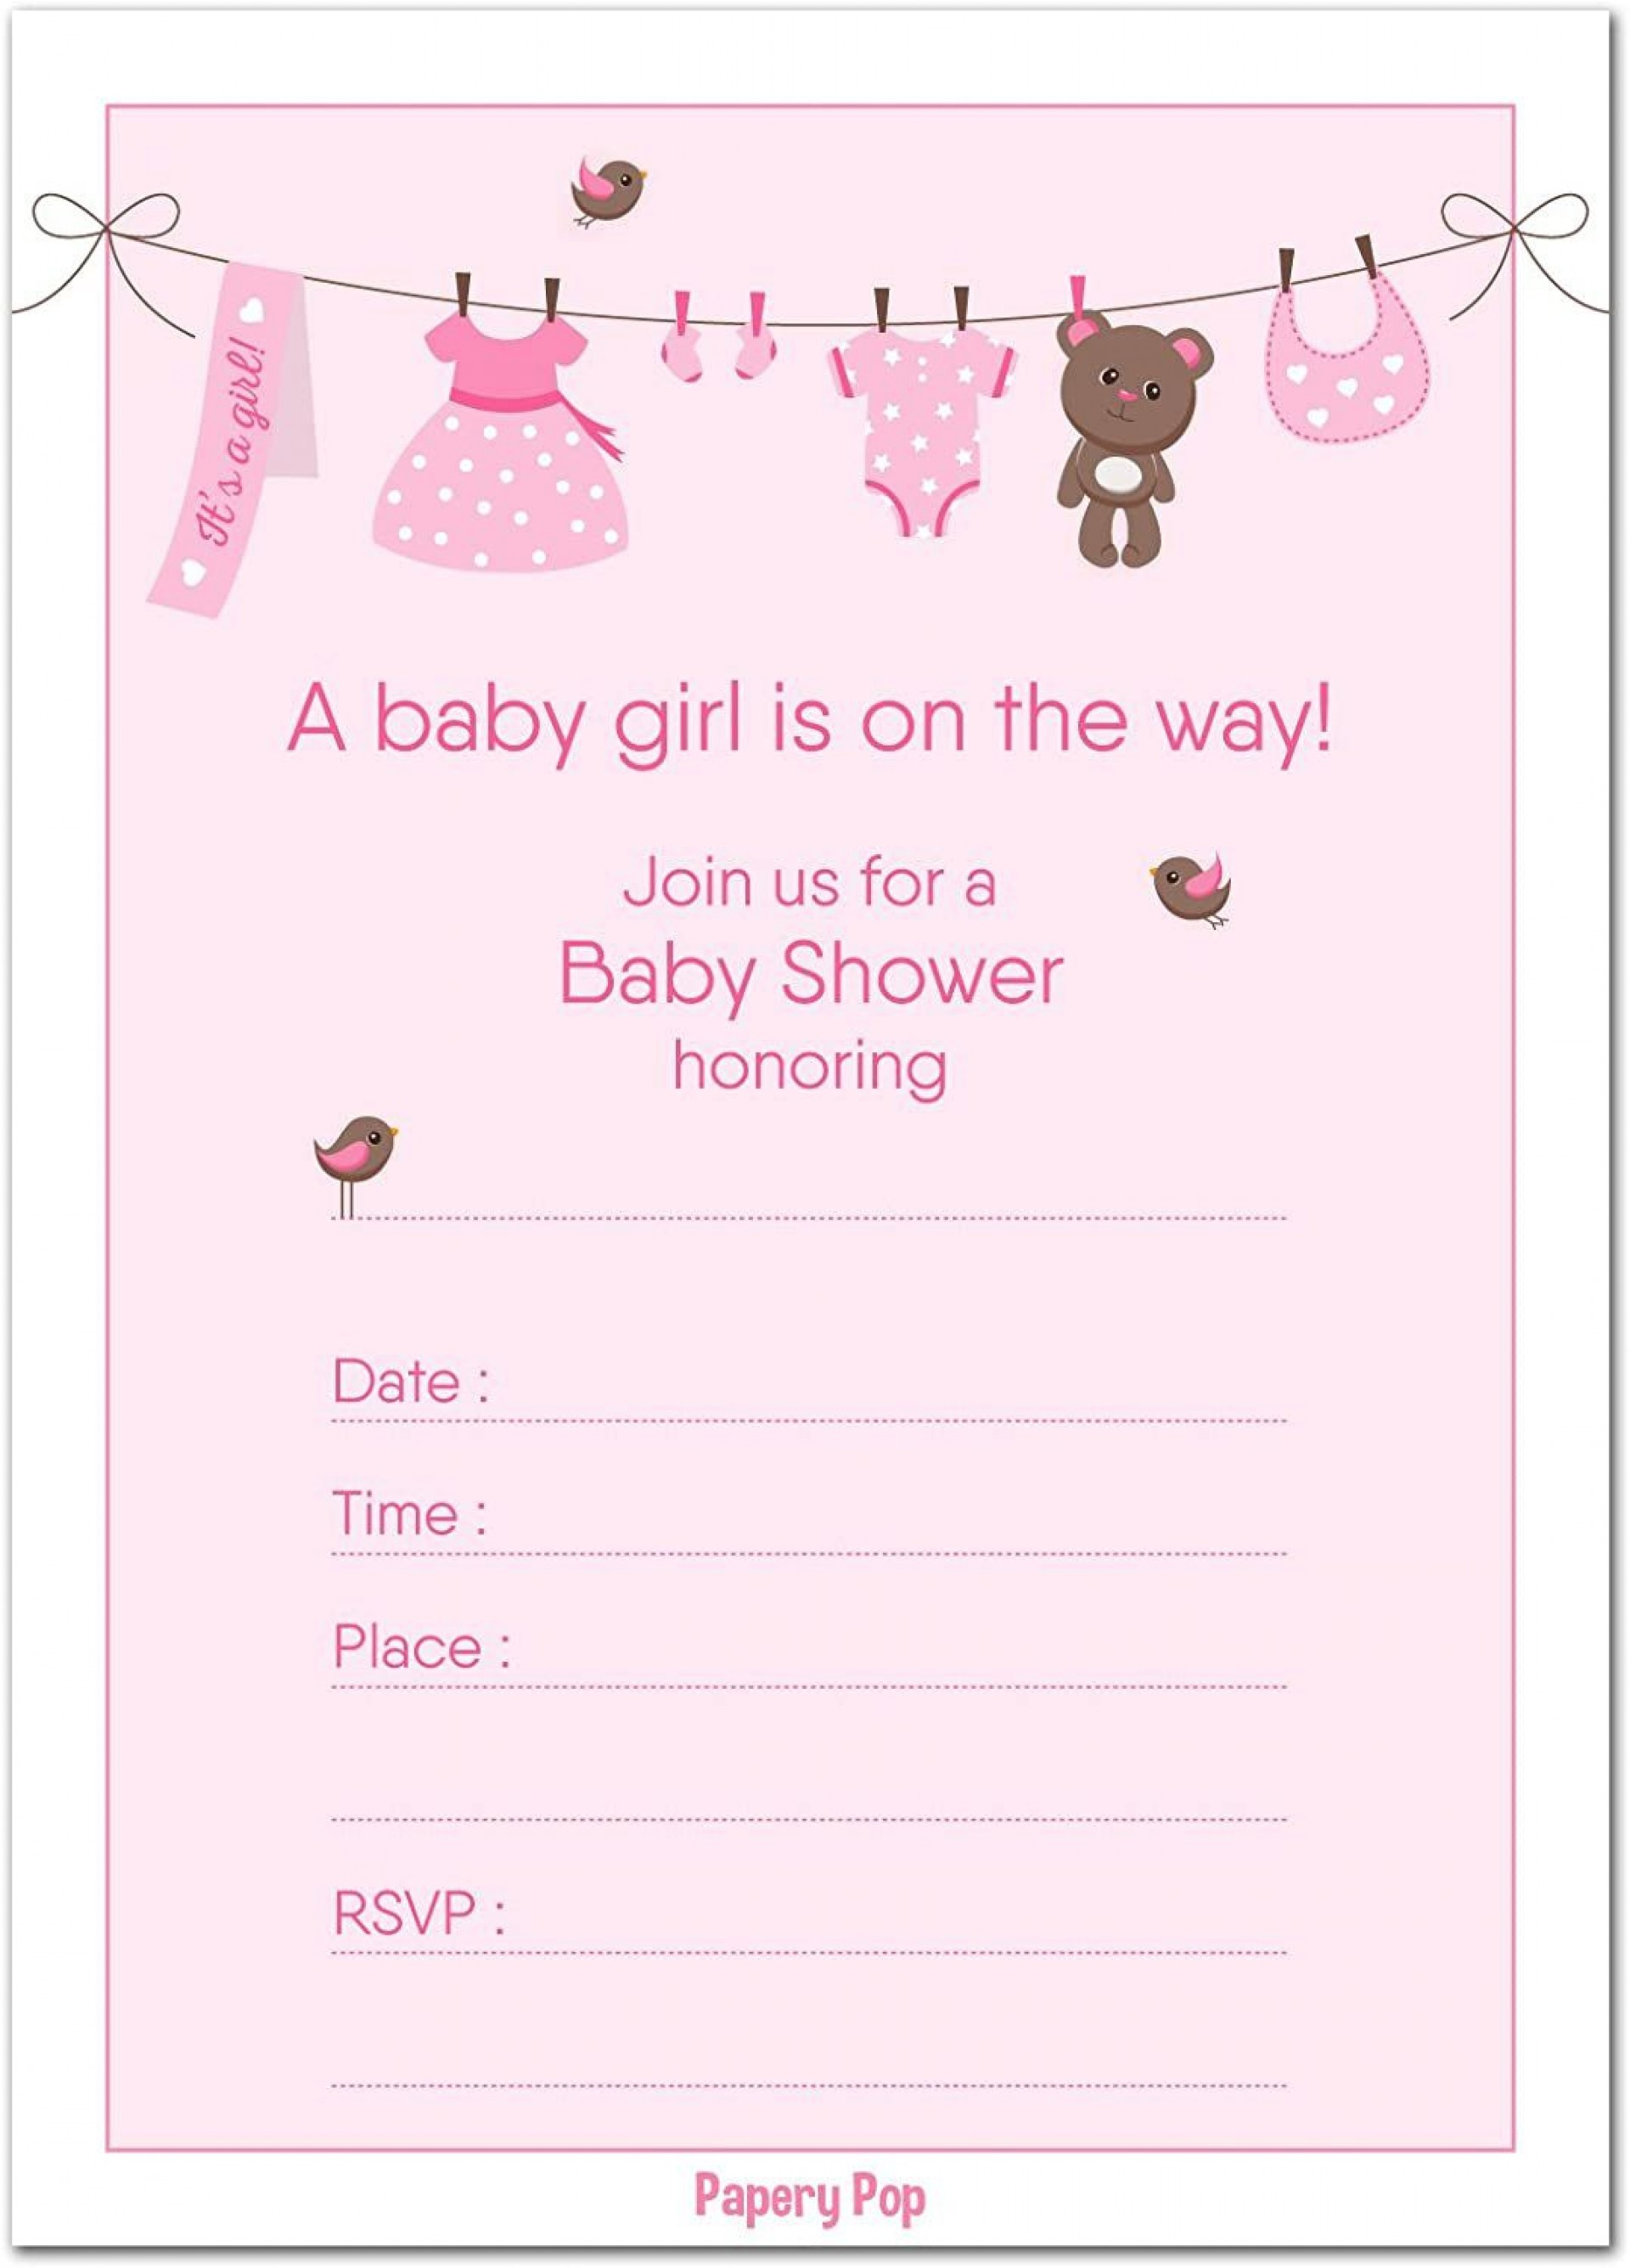 001 Unforgettable Baby Shower Template Girl Photo  Nautical Invitation Free For Word1920